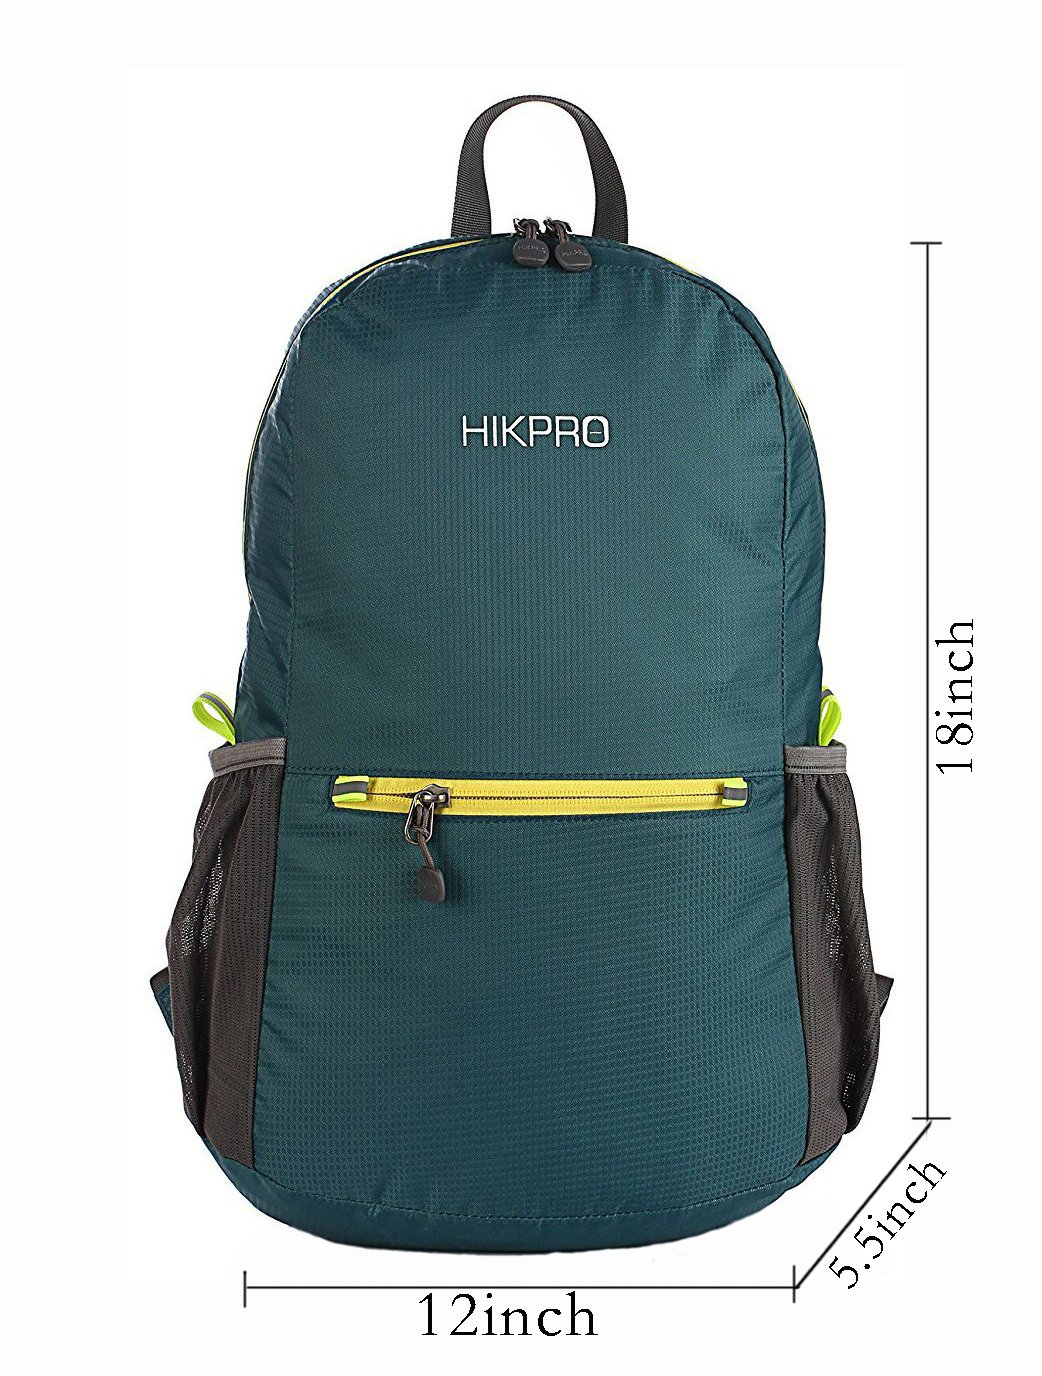 Hikpro 20L - The Most Durable Lightweight Packable Backpack, Water Resistant Travel Hiking Daypack For Men & Women by HIKPRO (Image #7)